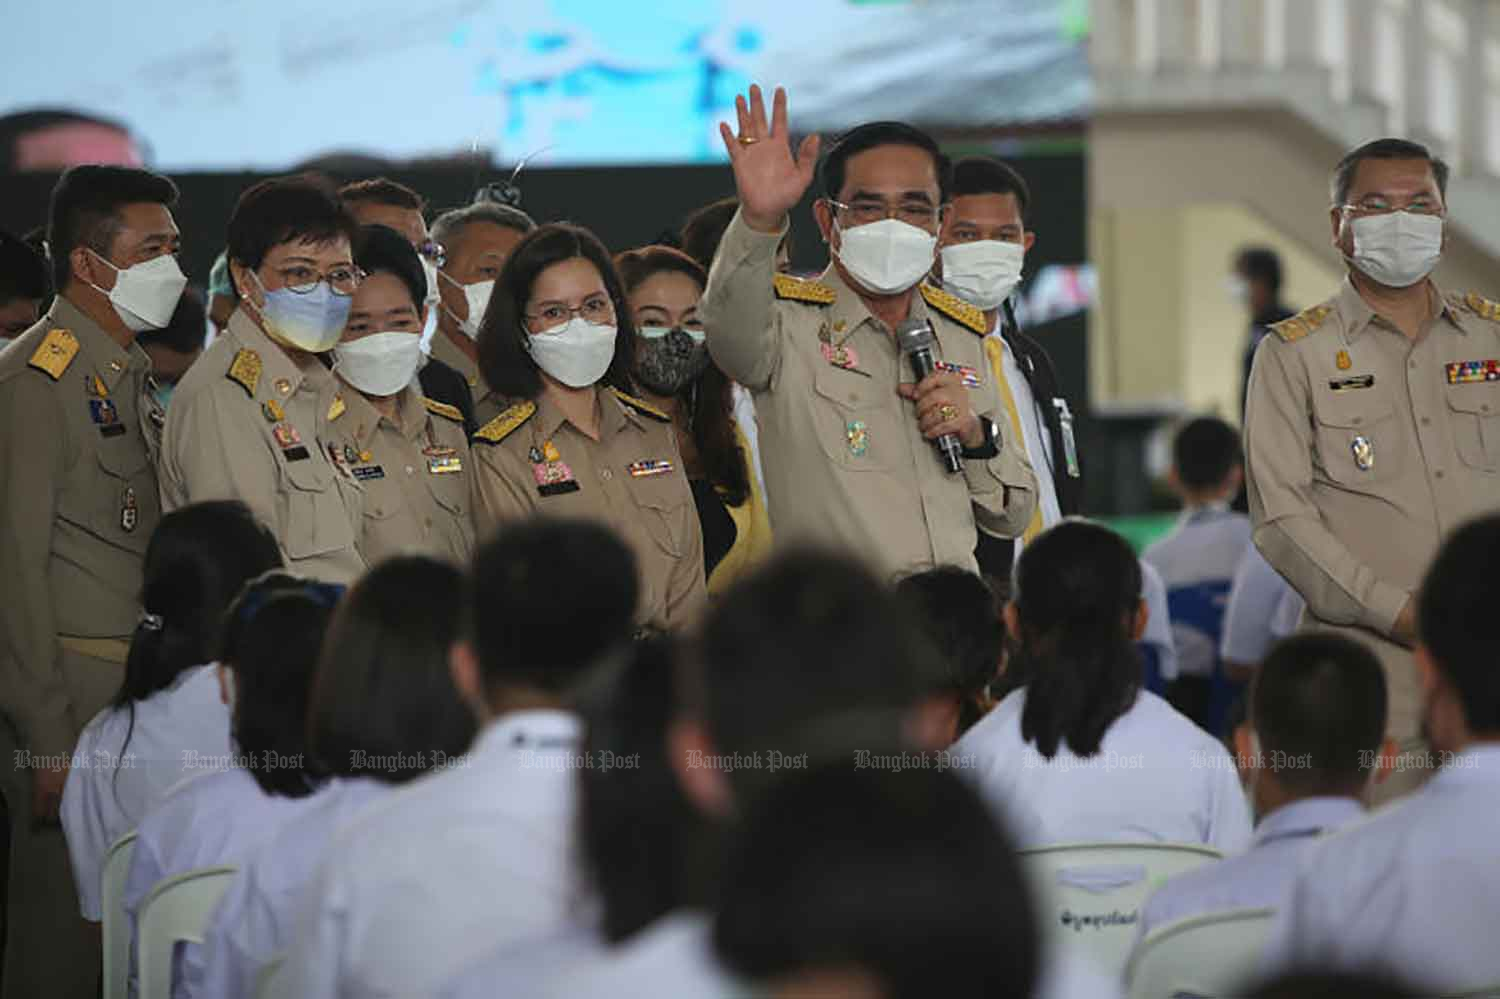 Prime Minister Prayut Chan-o-cha  presides over the kick-off of the vaccination campaign for young people aged 12-18 in Bangkok's Huai Khwang district on Monday. (Photo: Varuth Hirunyatheb)